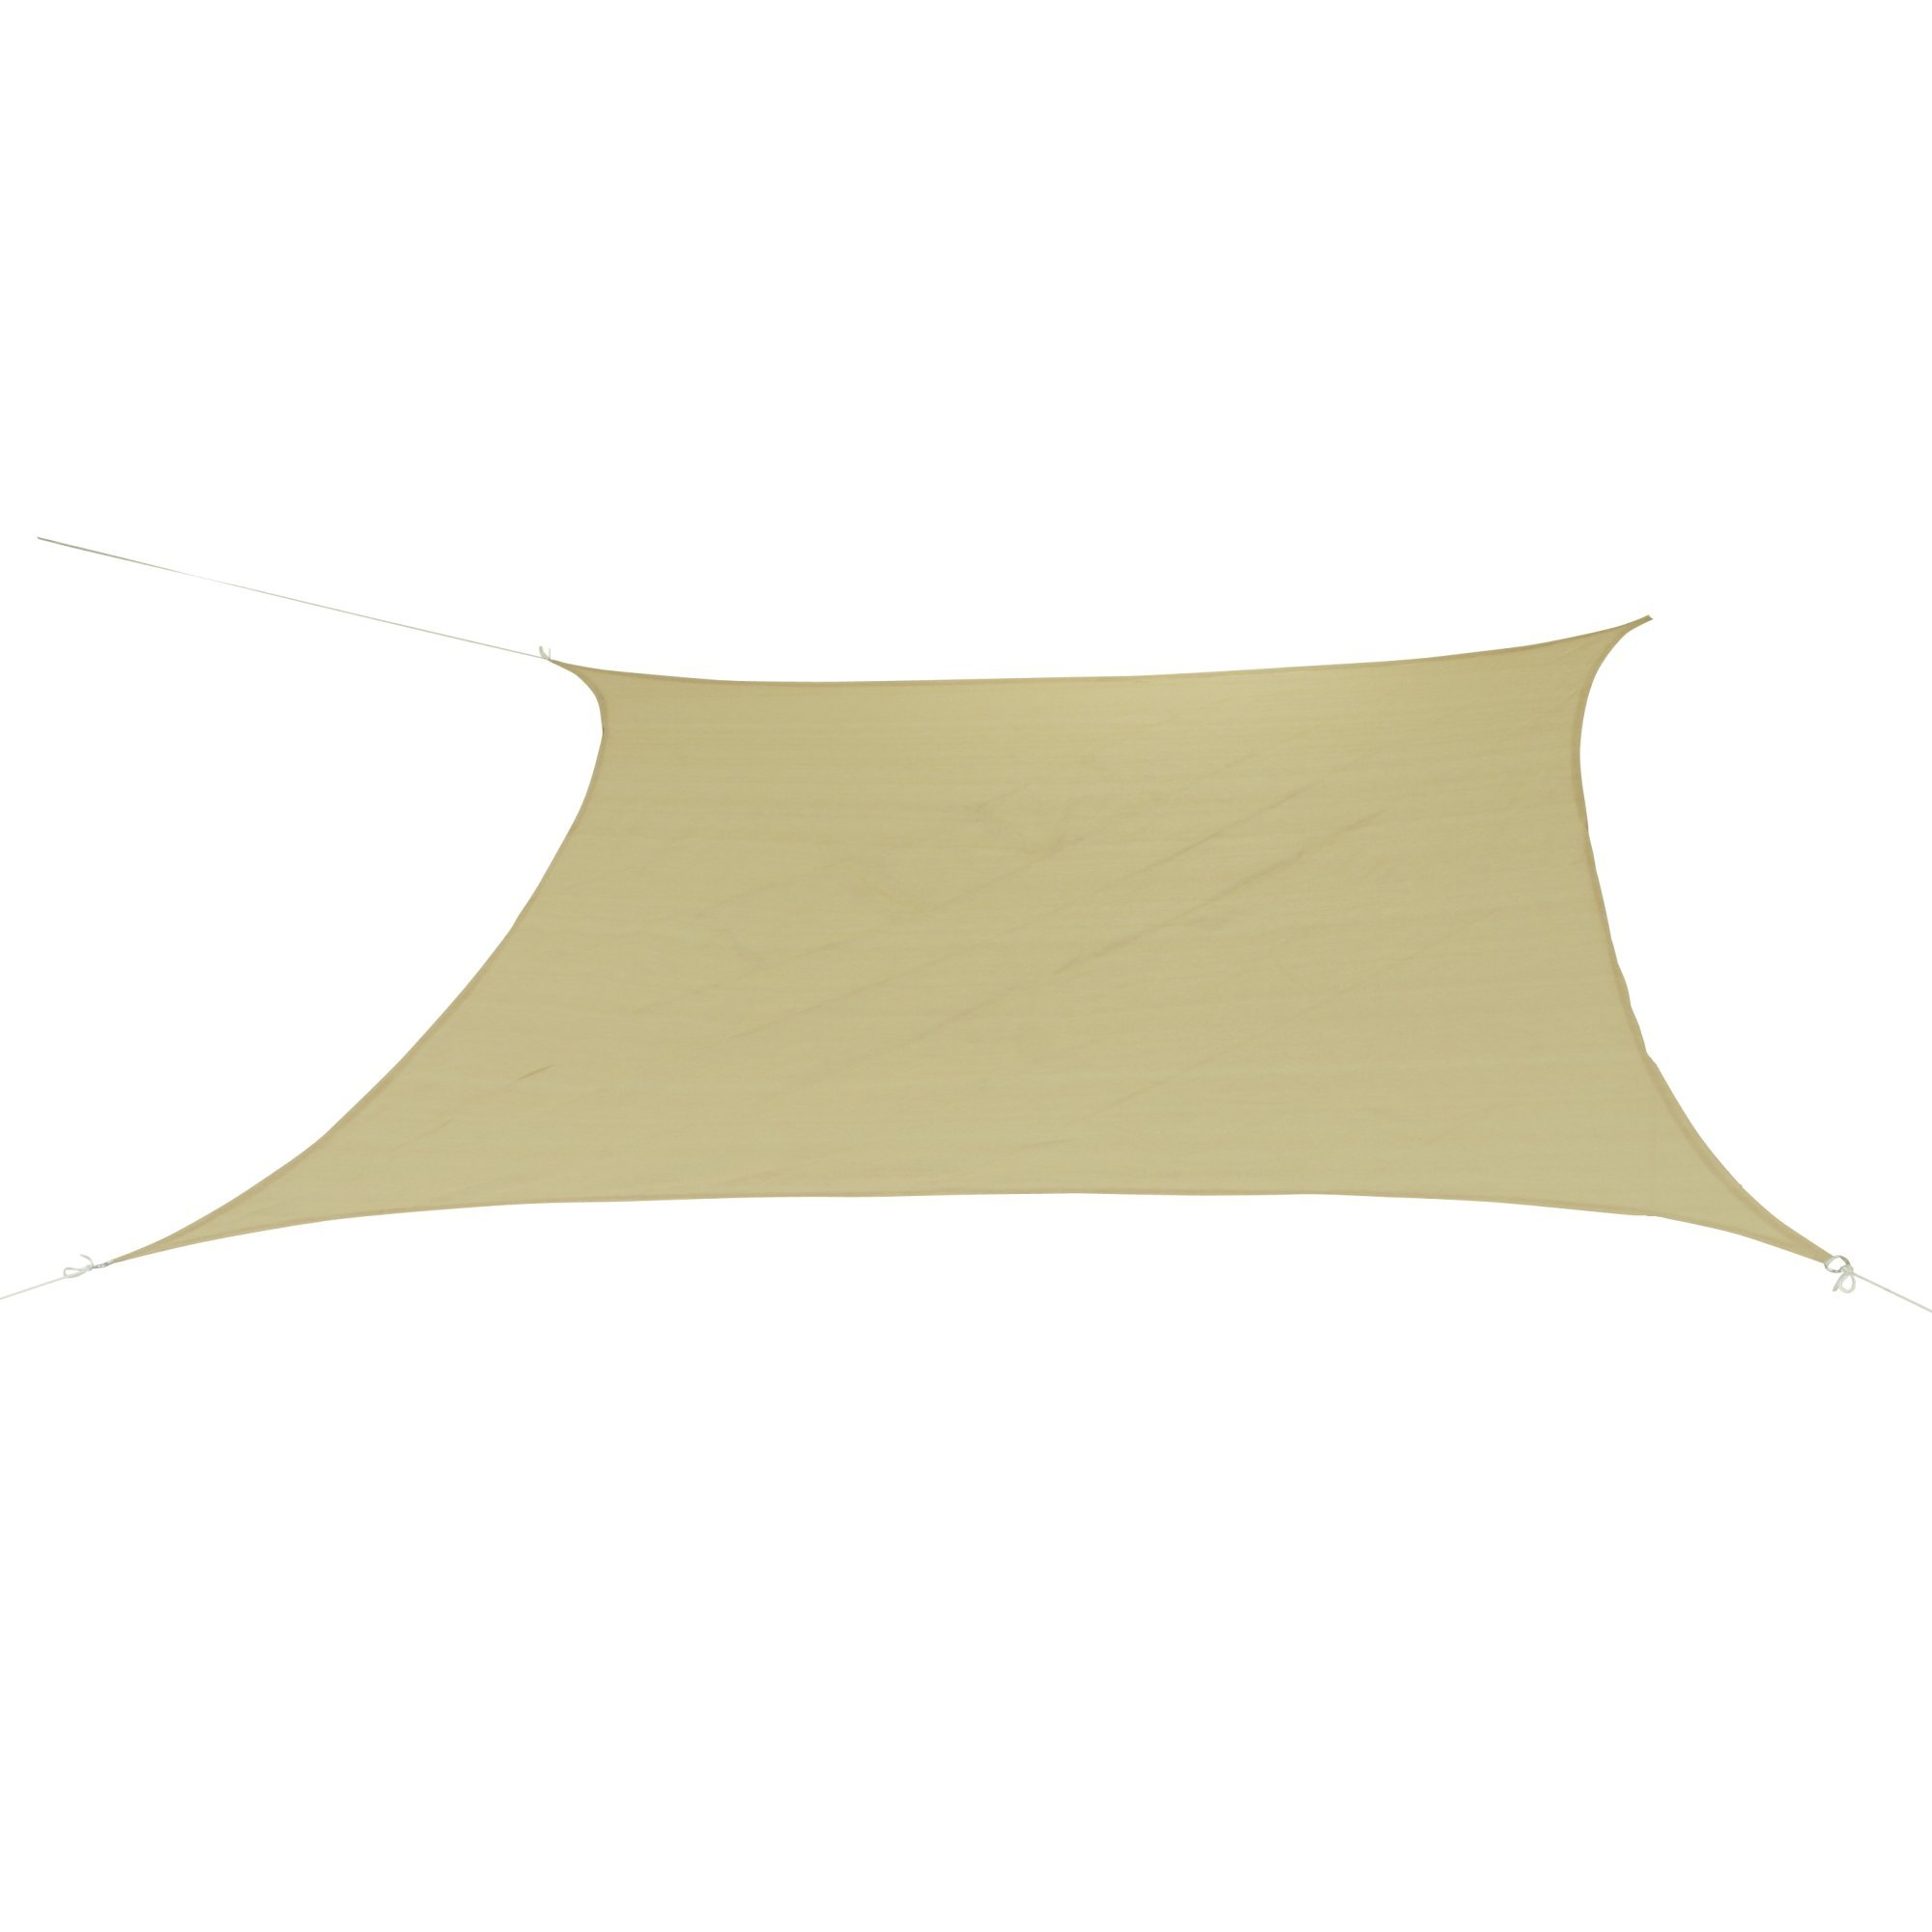 10T Outdoor Equipment 10T Patterson 360 Lonas, Beige, Estándar: Amazon.es: Deportes y aire libre